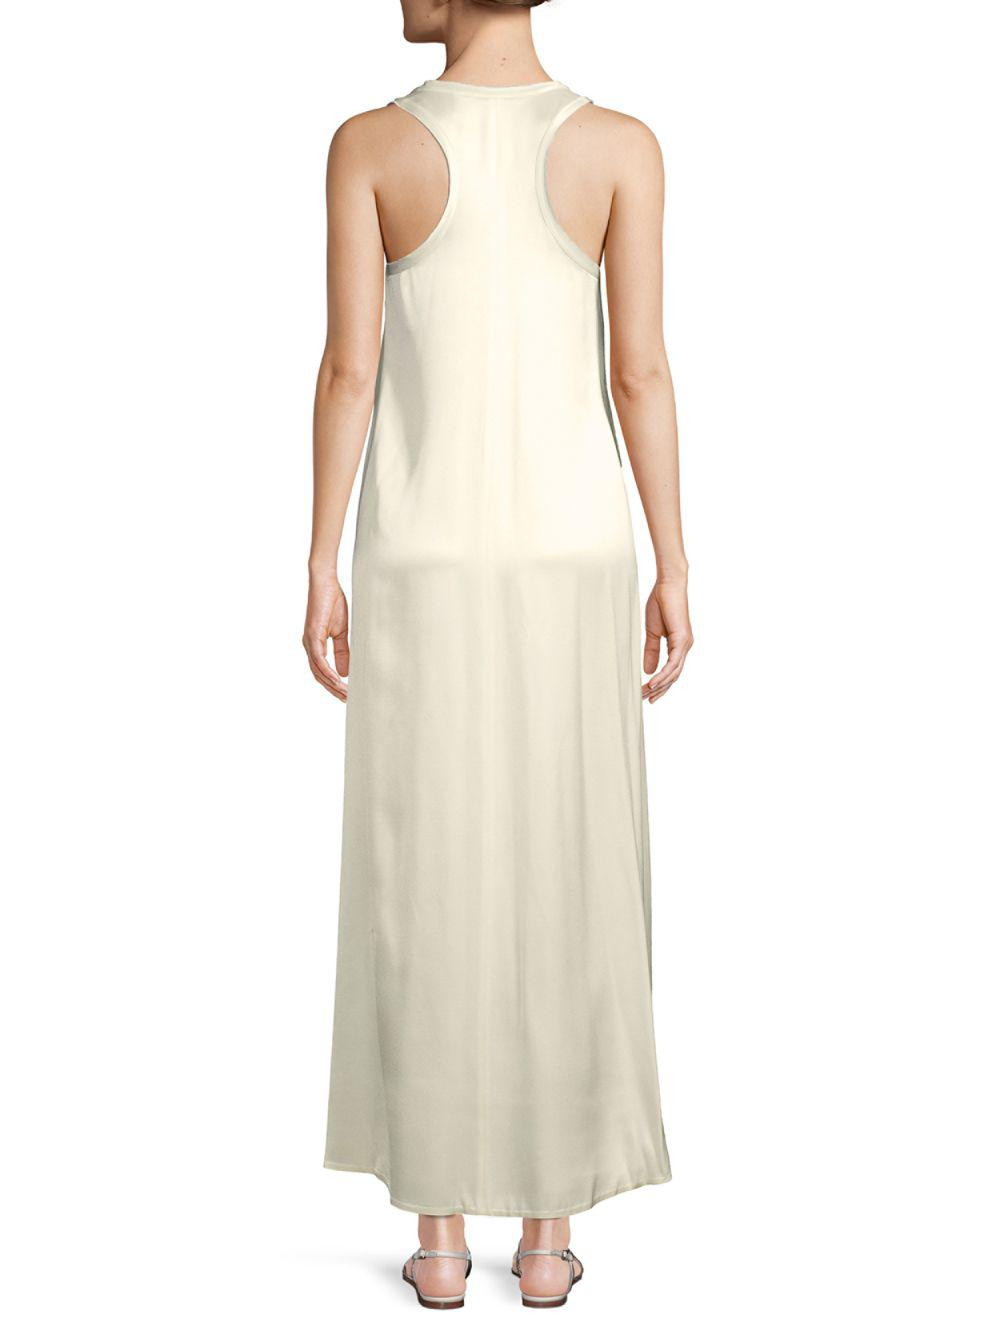 White Satin Tank Dress